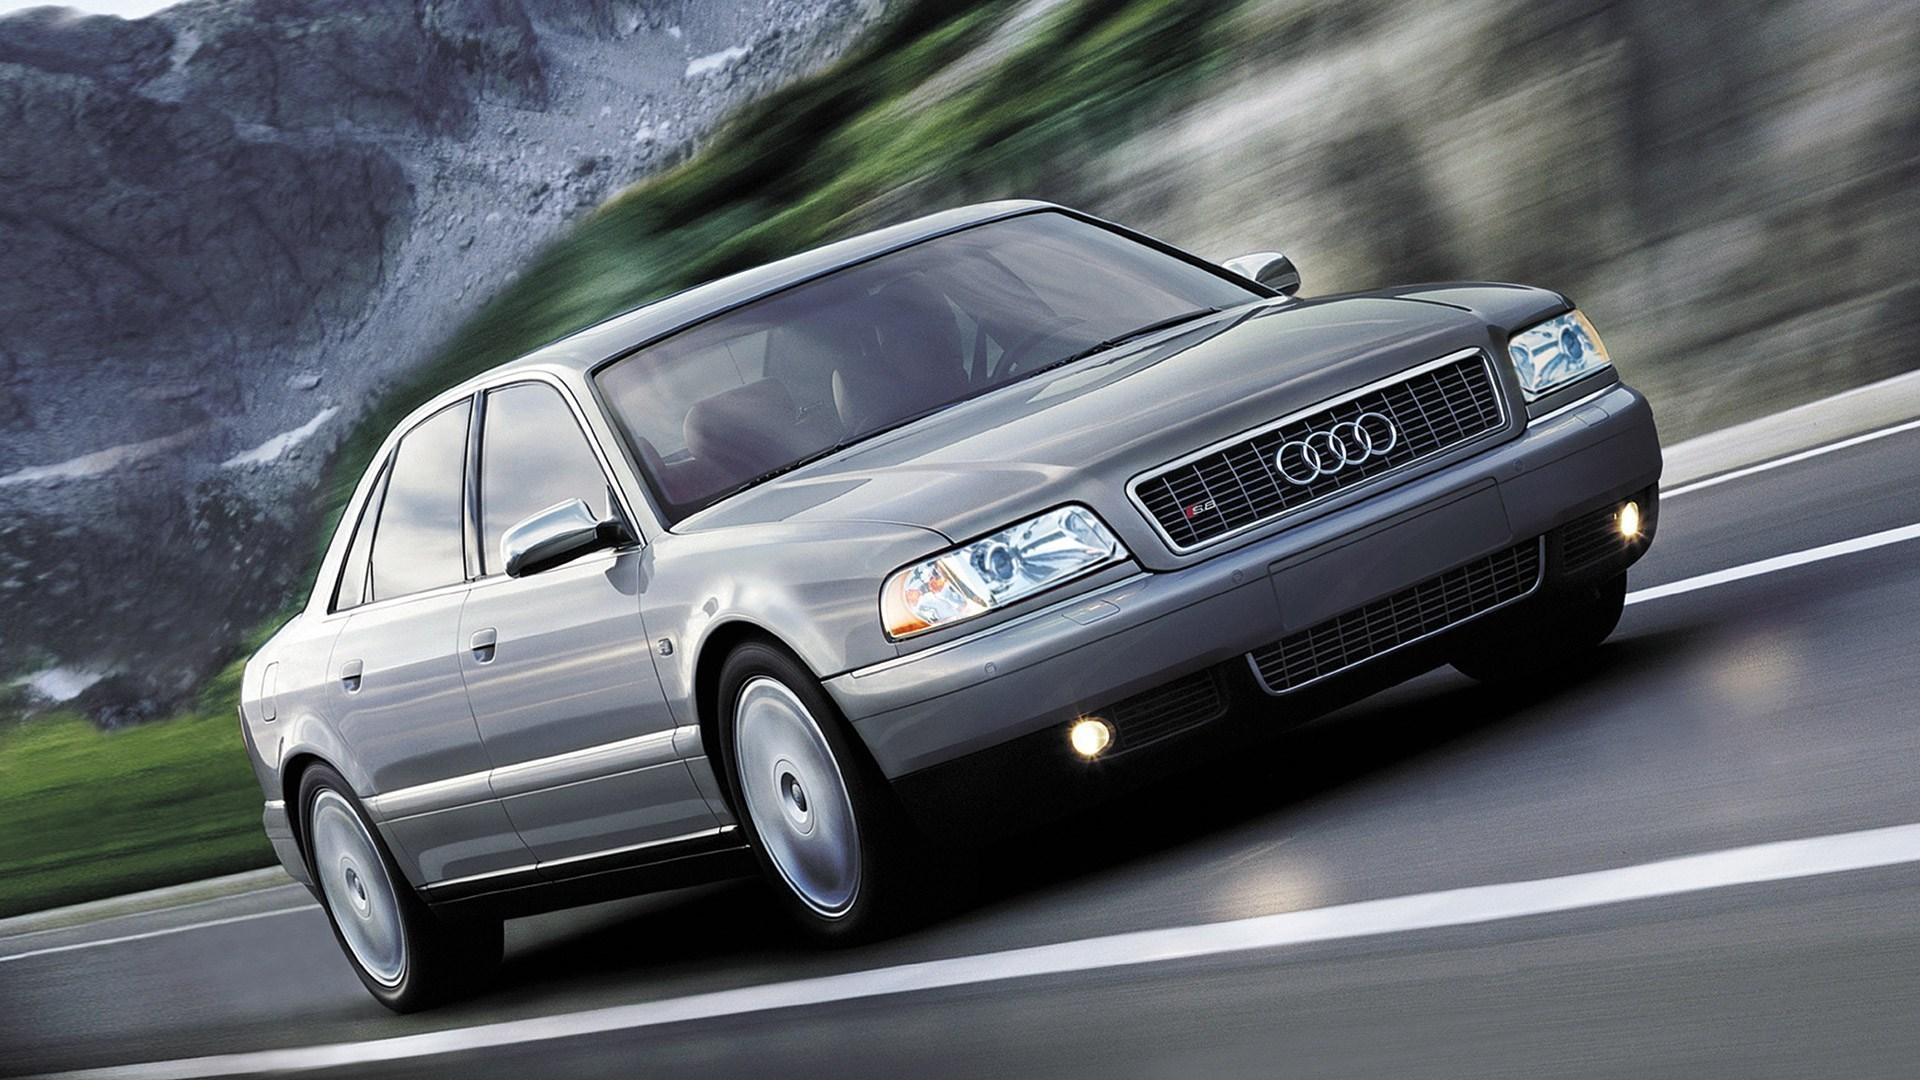 1996 Audi S8 Wallpapers Hd Images Wsupercars A8 D2 Wallpaper If Ip 1920x1080